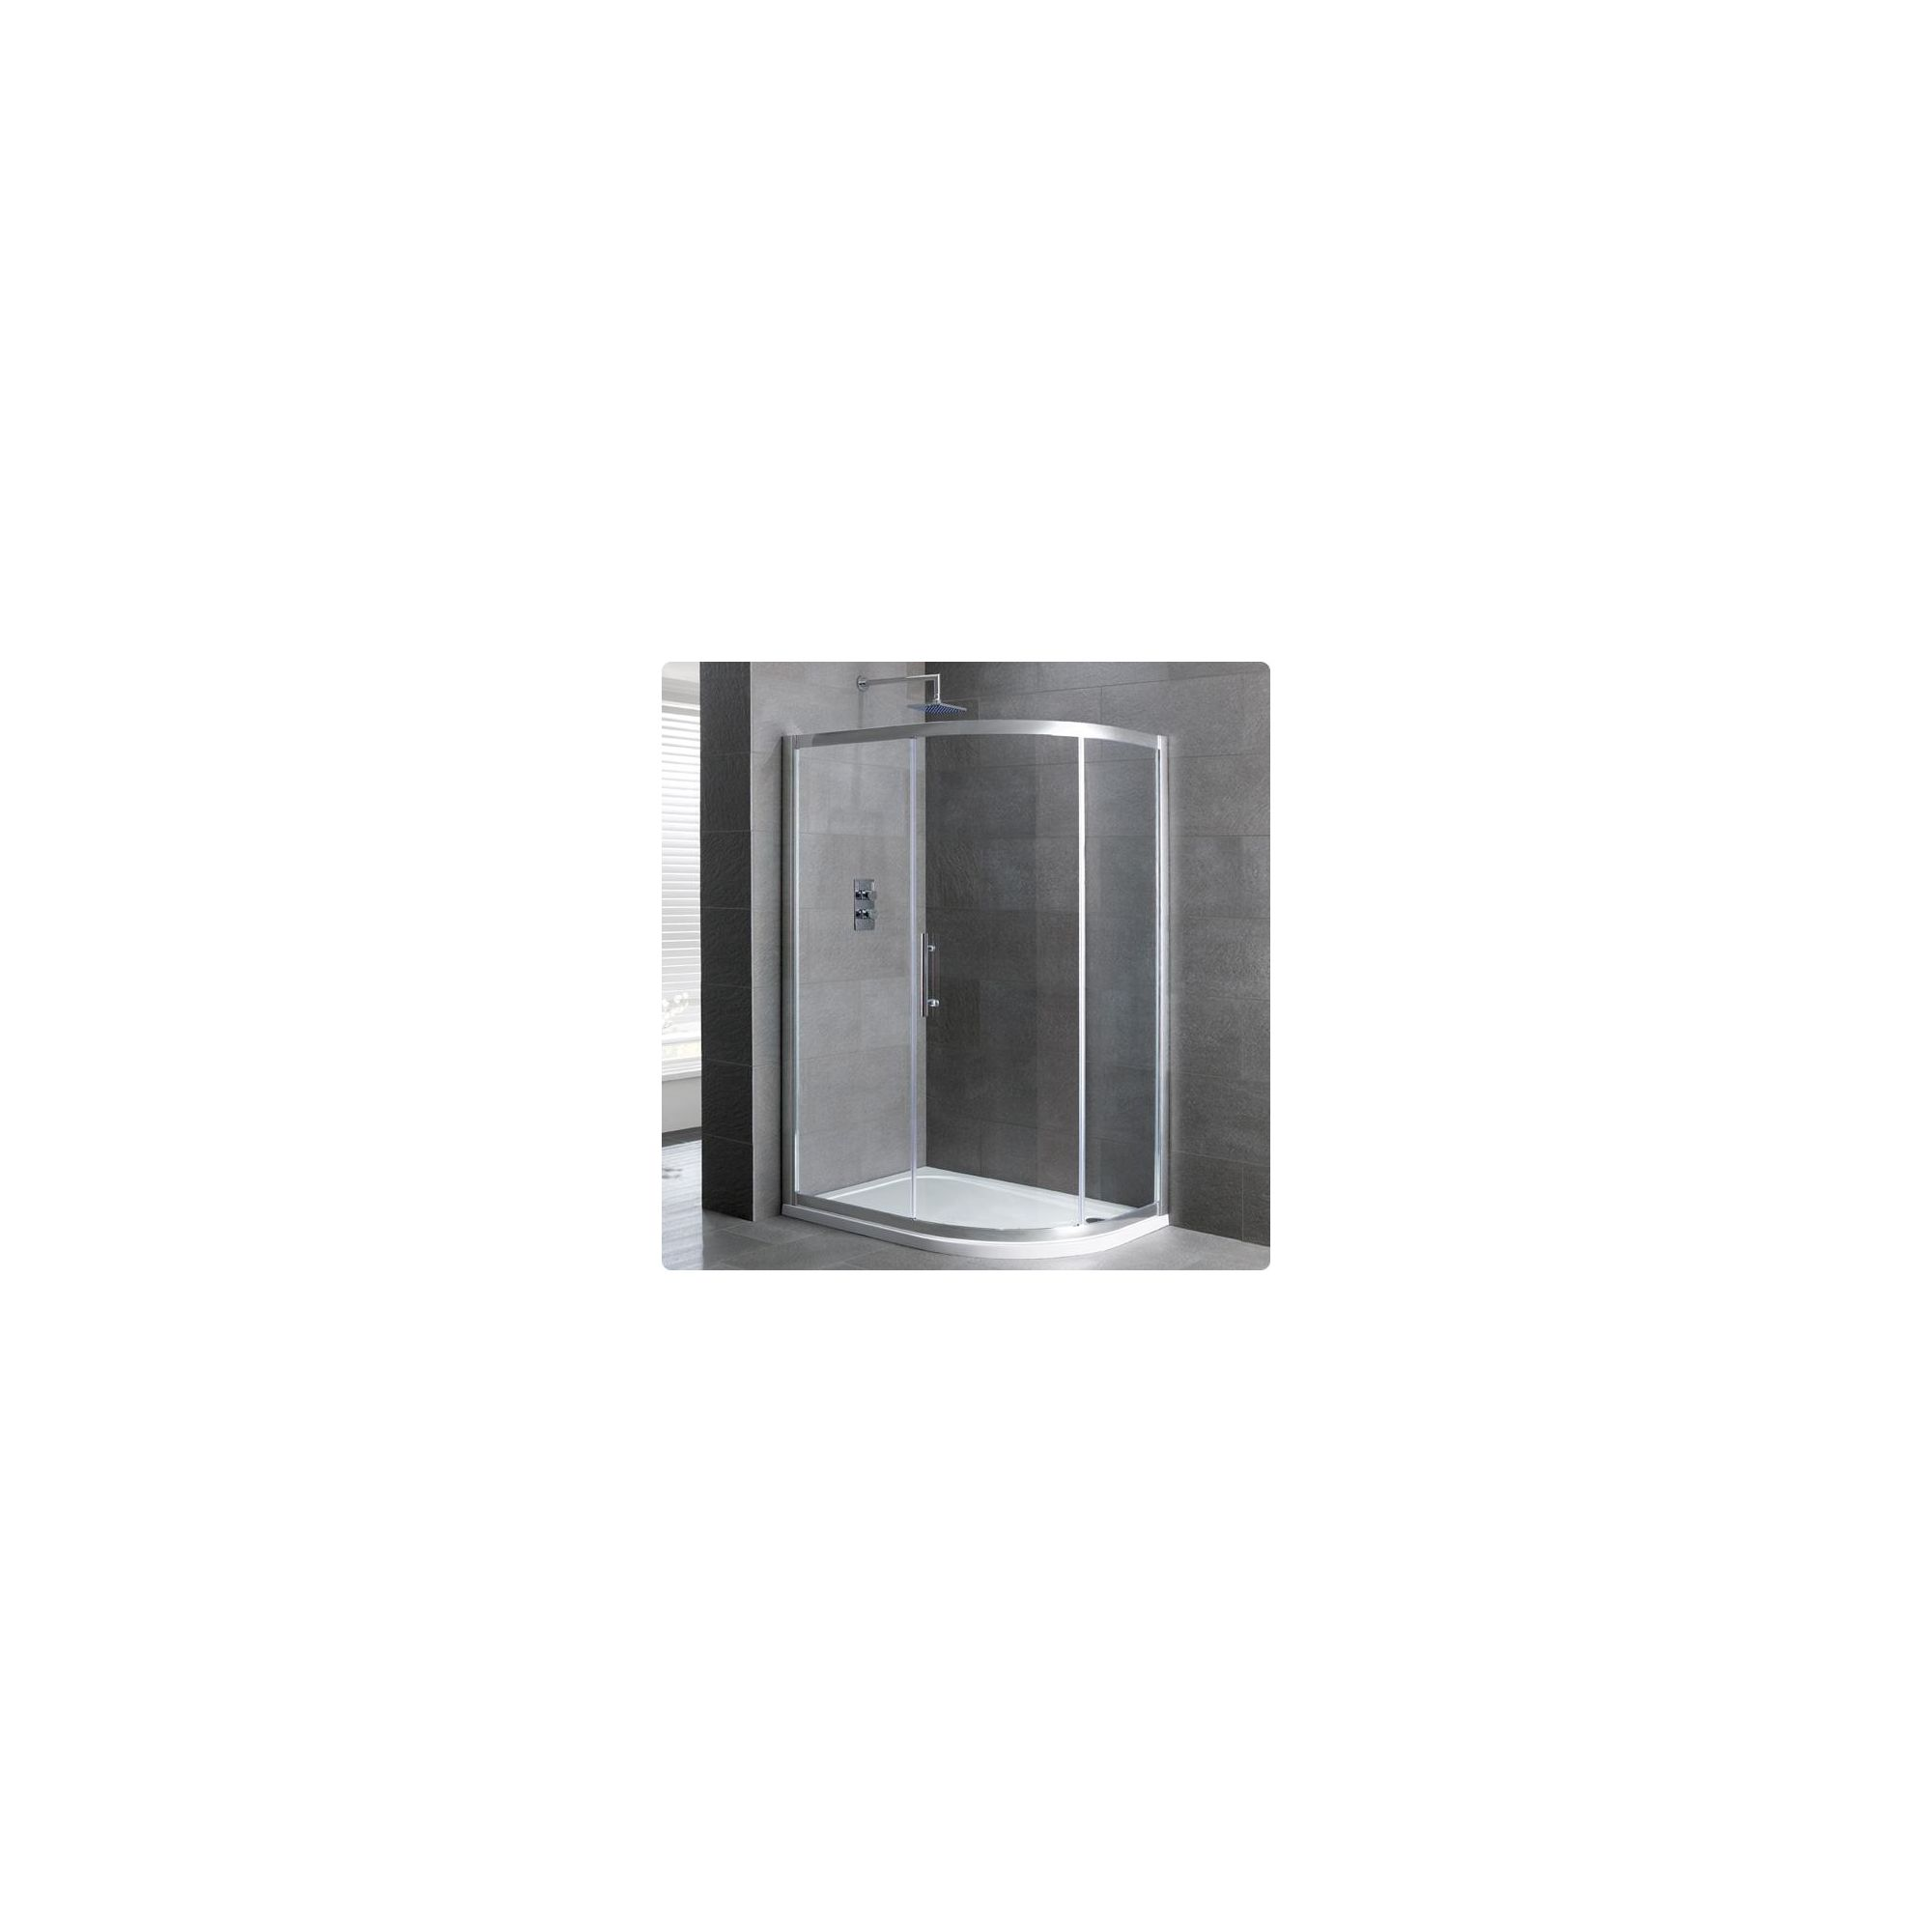 Duchy Select Silver 1 Door Offset Quadrant Shower Enclosure 1000mm x 800mm, Standard Tray, 6mm Glass at Tesco Direct